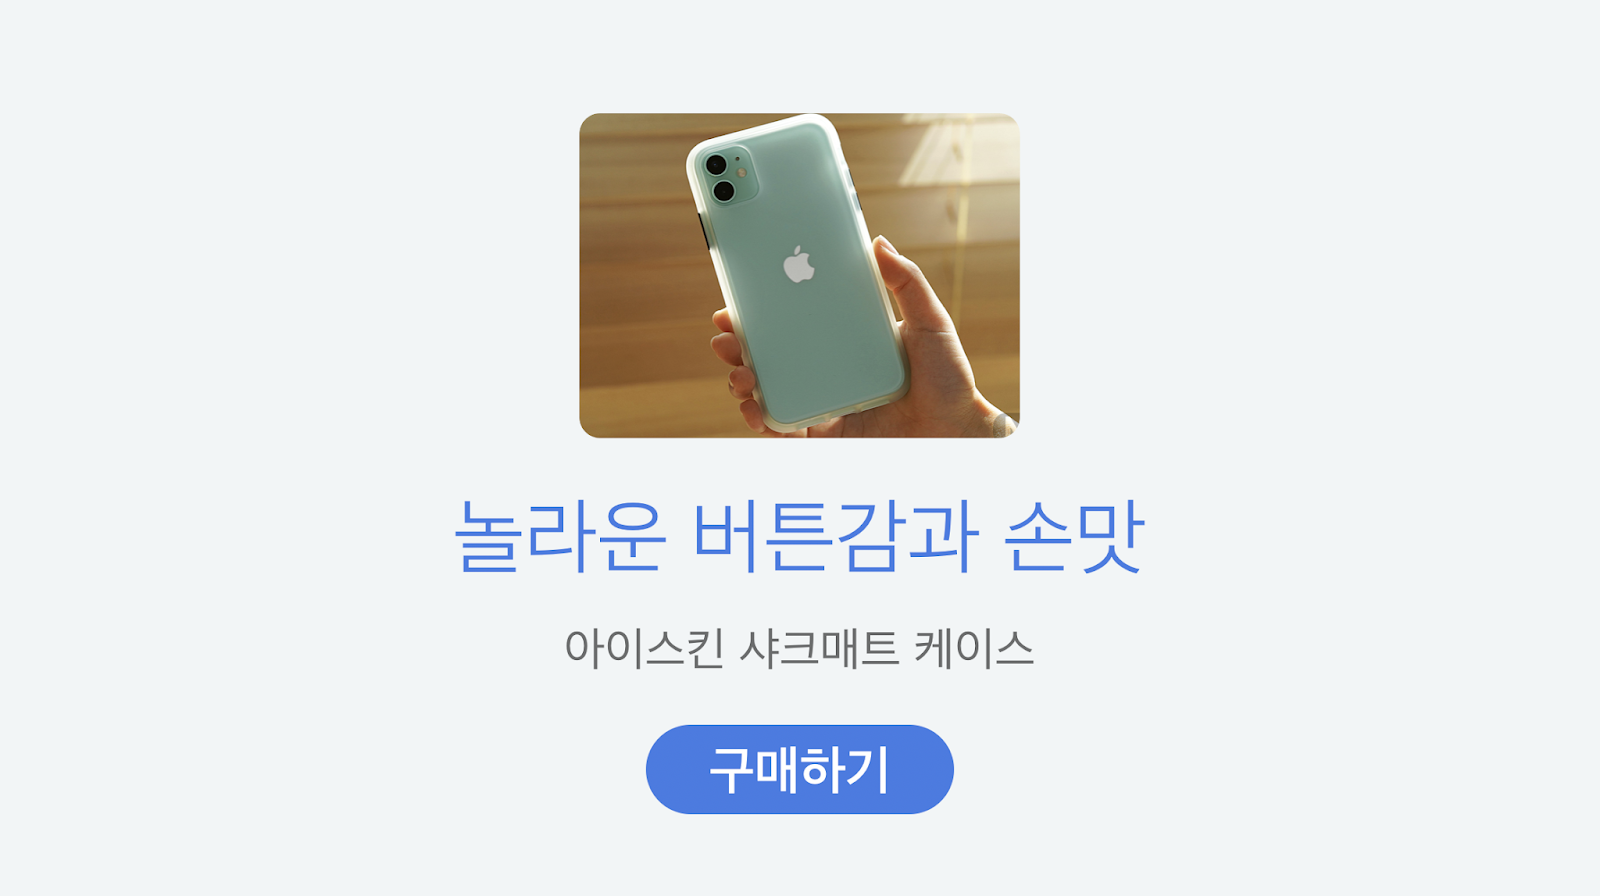 http://i-skin.co.kr/product/detail.html?product_no=844&cate_no=1&display_group=2